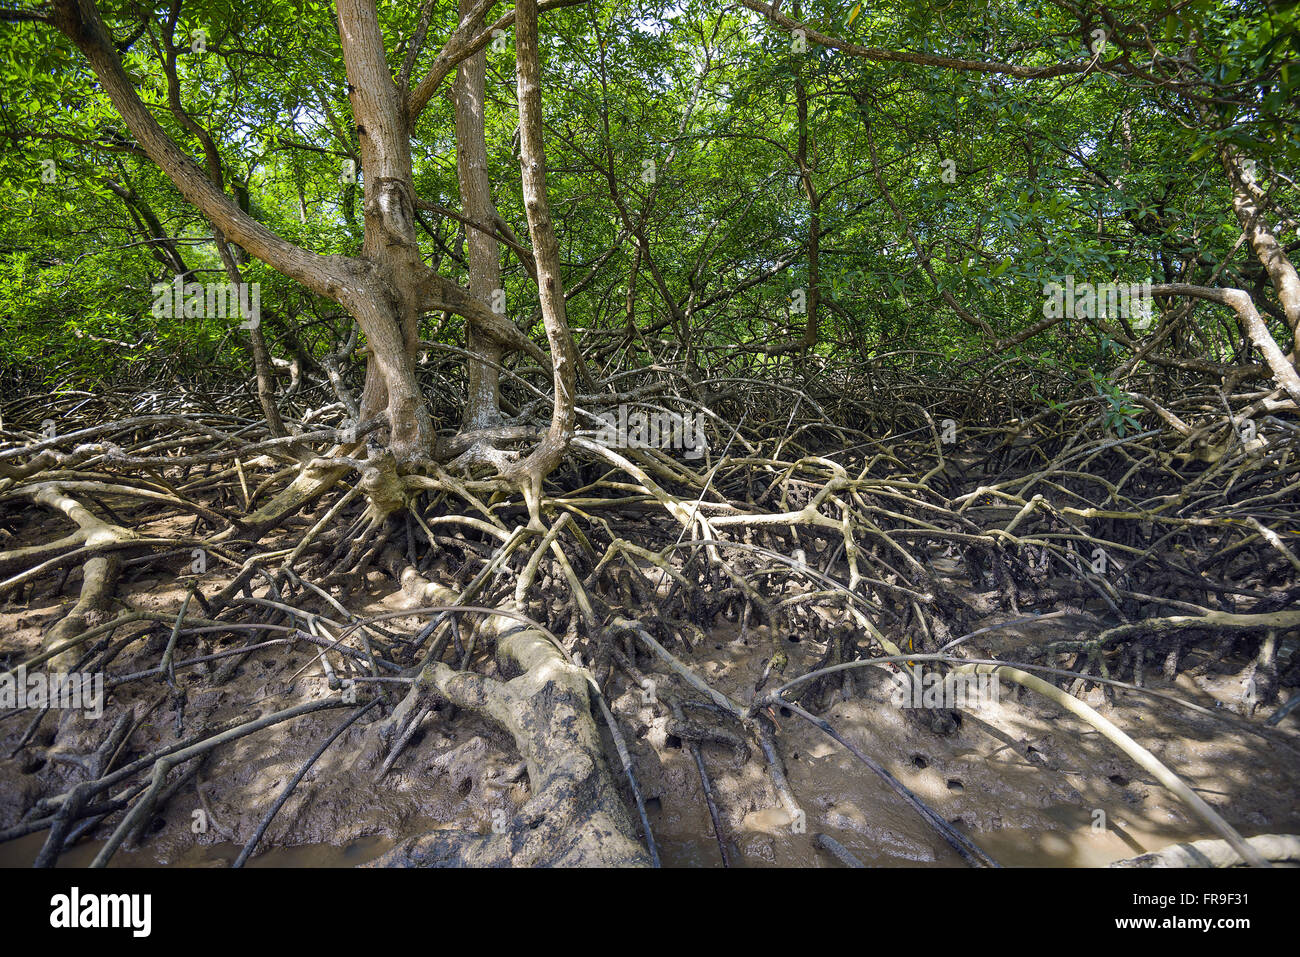 With emphasis on mangrove roots flights - Stock Image